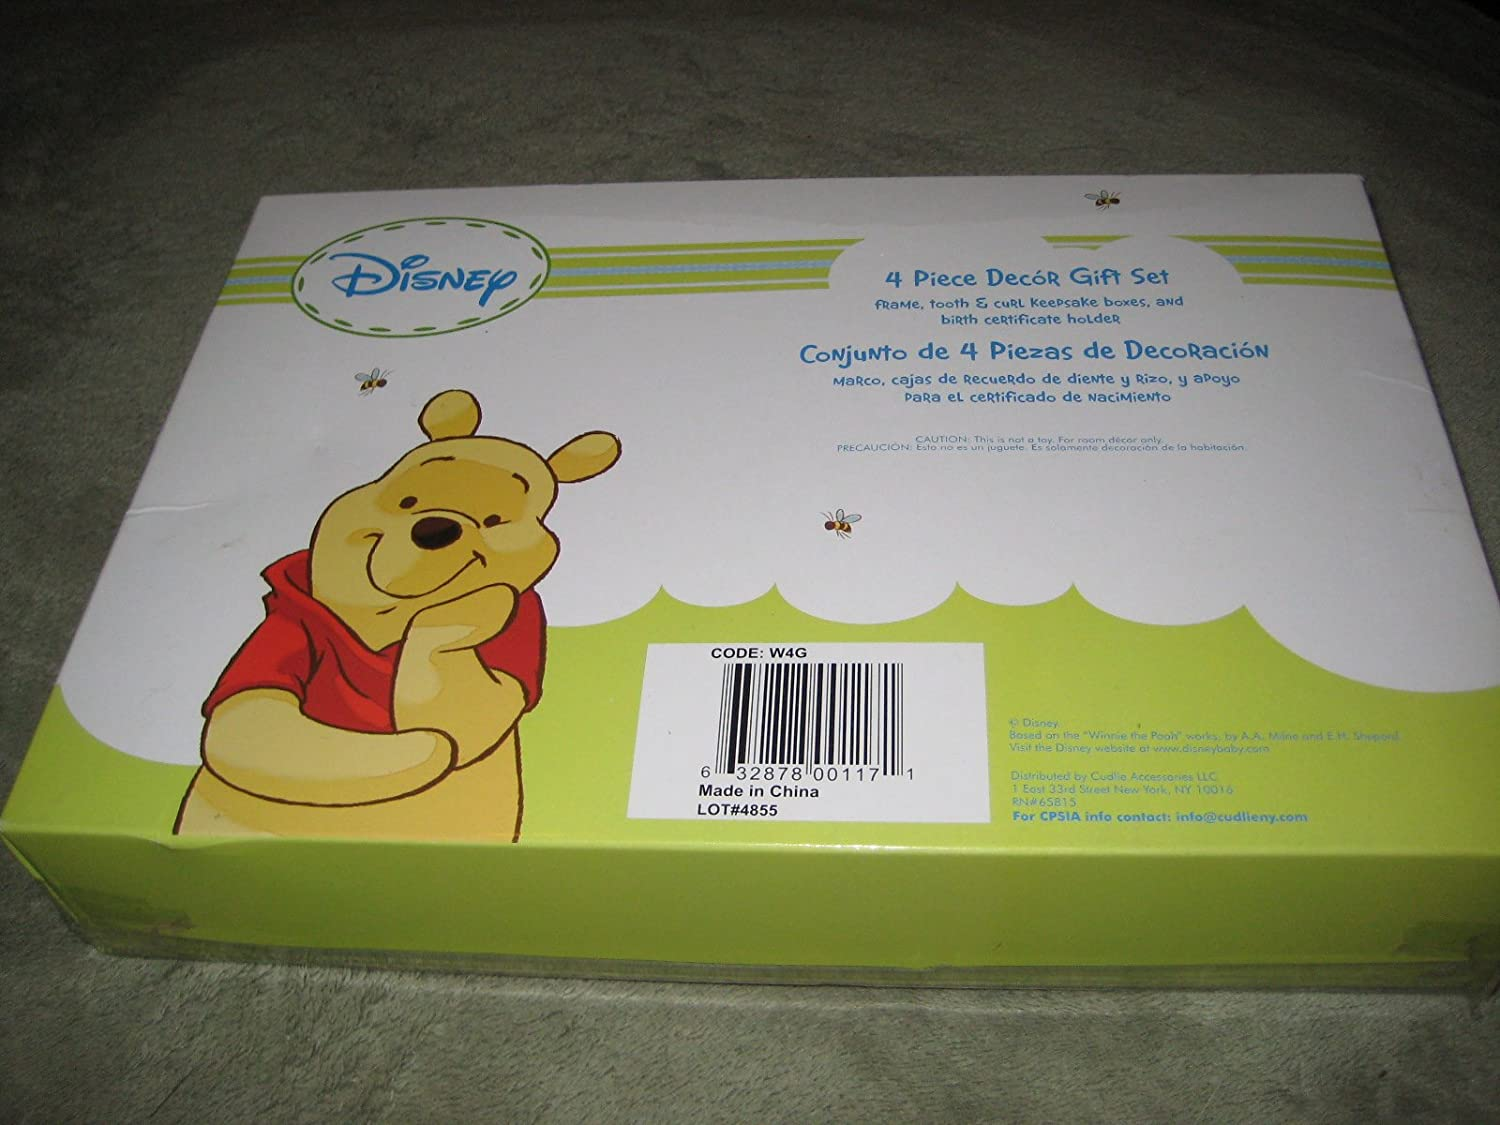 Amazon.com : DISNEY FRAME, TOOTH & CURL KEEPSAKE BOXES & BIRTH CERTIFICATE HOLDER WINNIE THE POOH : Baby Keepsake Products : Baby